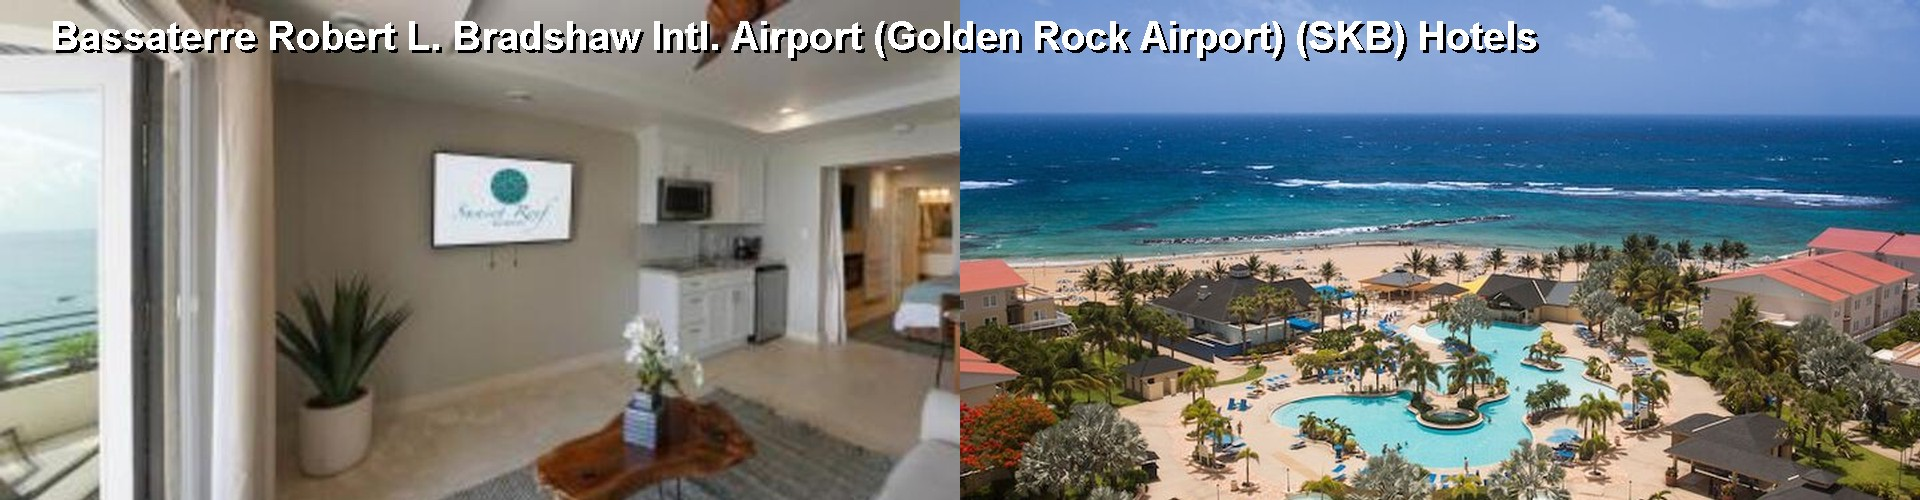 5 Best Hotels near Bassaterre Robert L. Bradshaw Intl. Airport (Golden Rock Airport) (SKB)